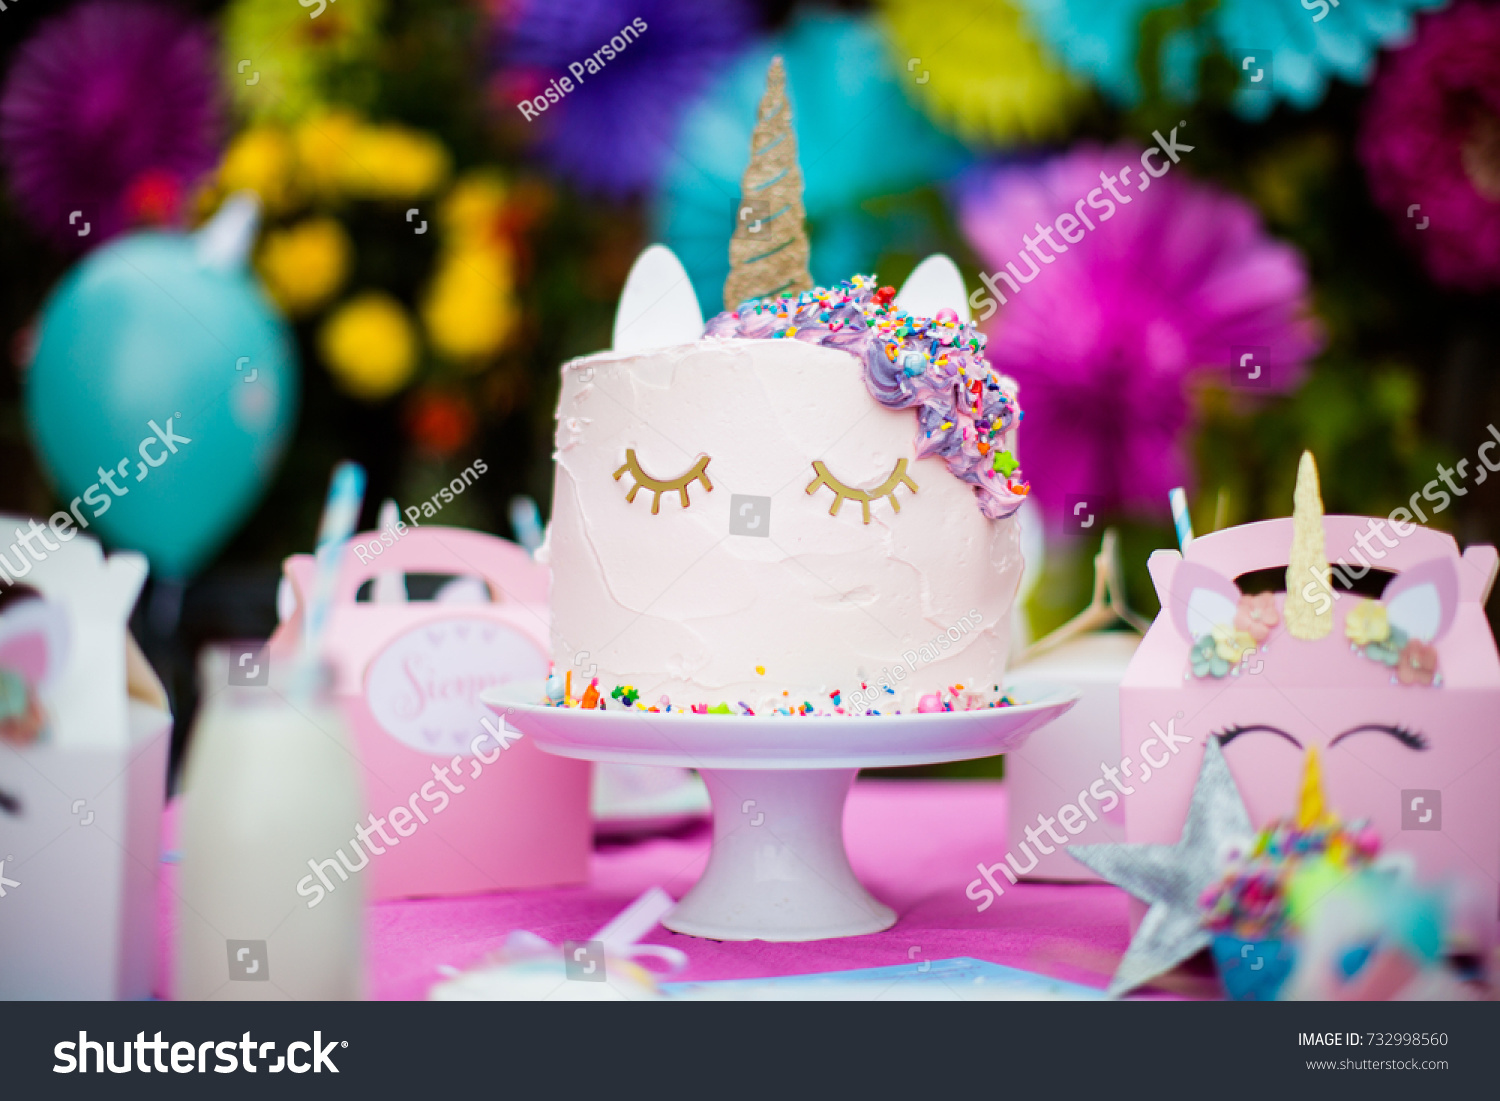 Unicorn Themed Birthday Cake In Pink With Sprinkles